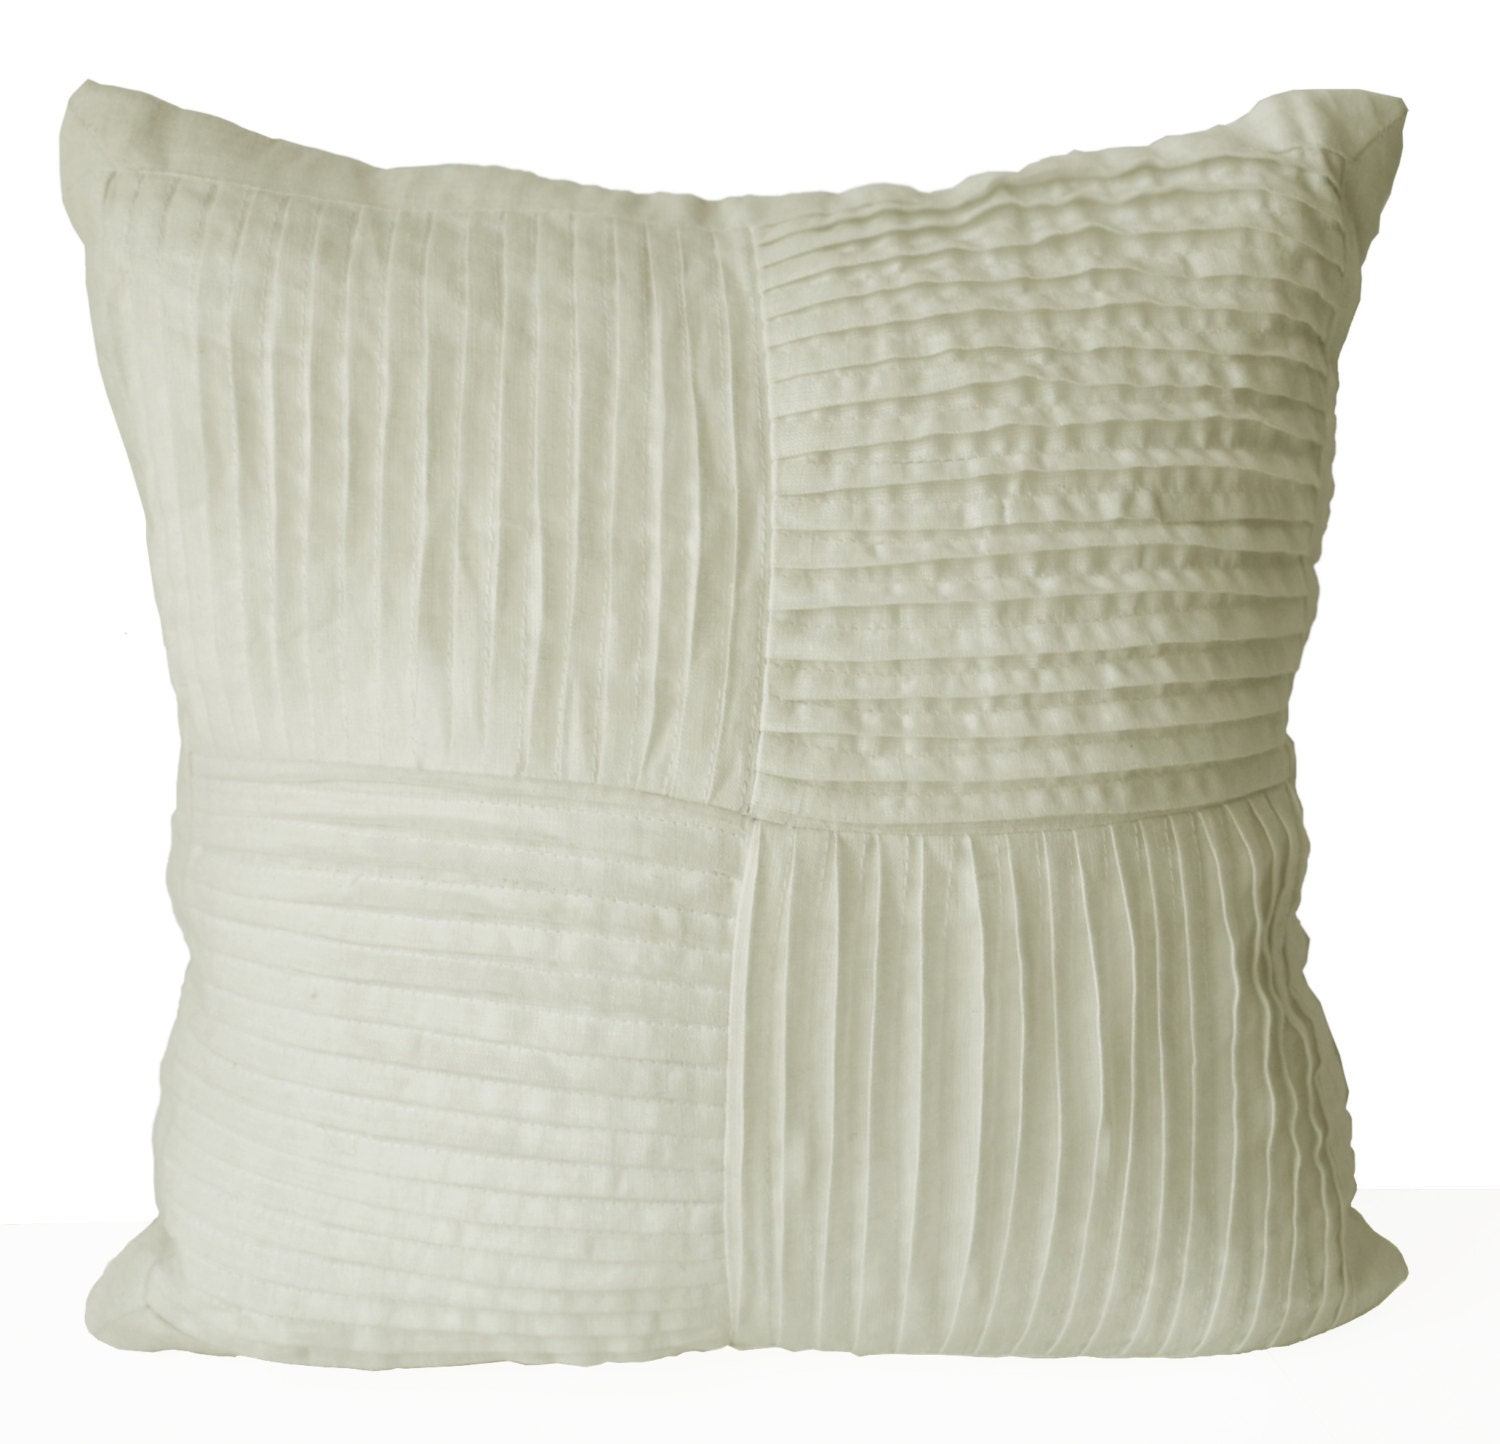 Decorative Pillow Ivory : Decorative Pillow Cover Ivory Pleated Linen Pillow Case